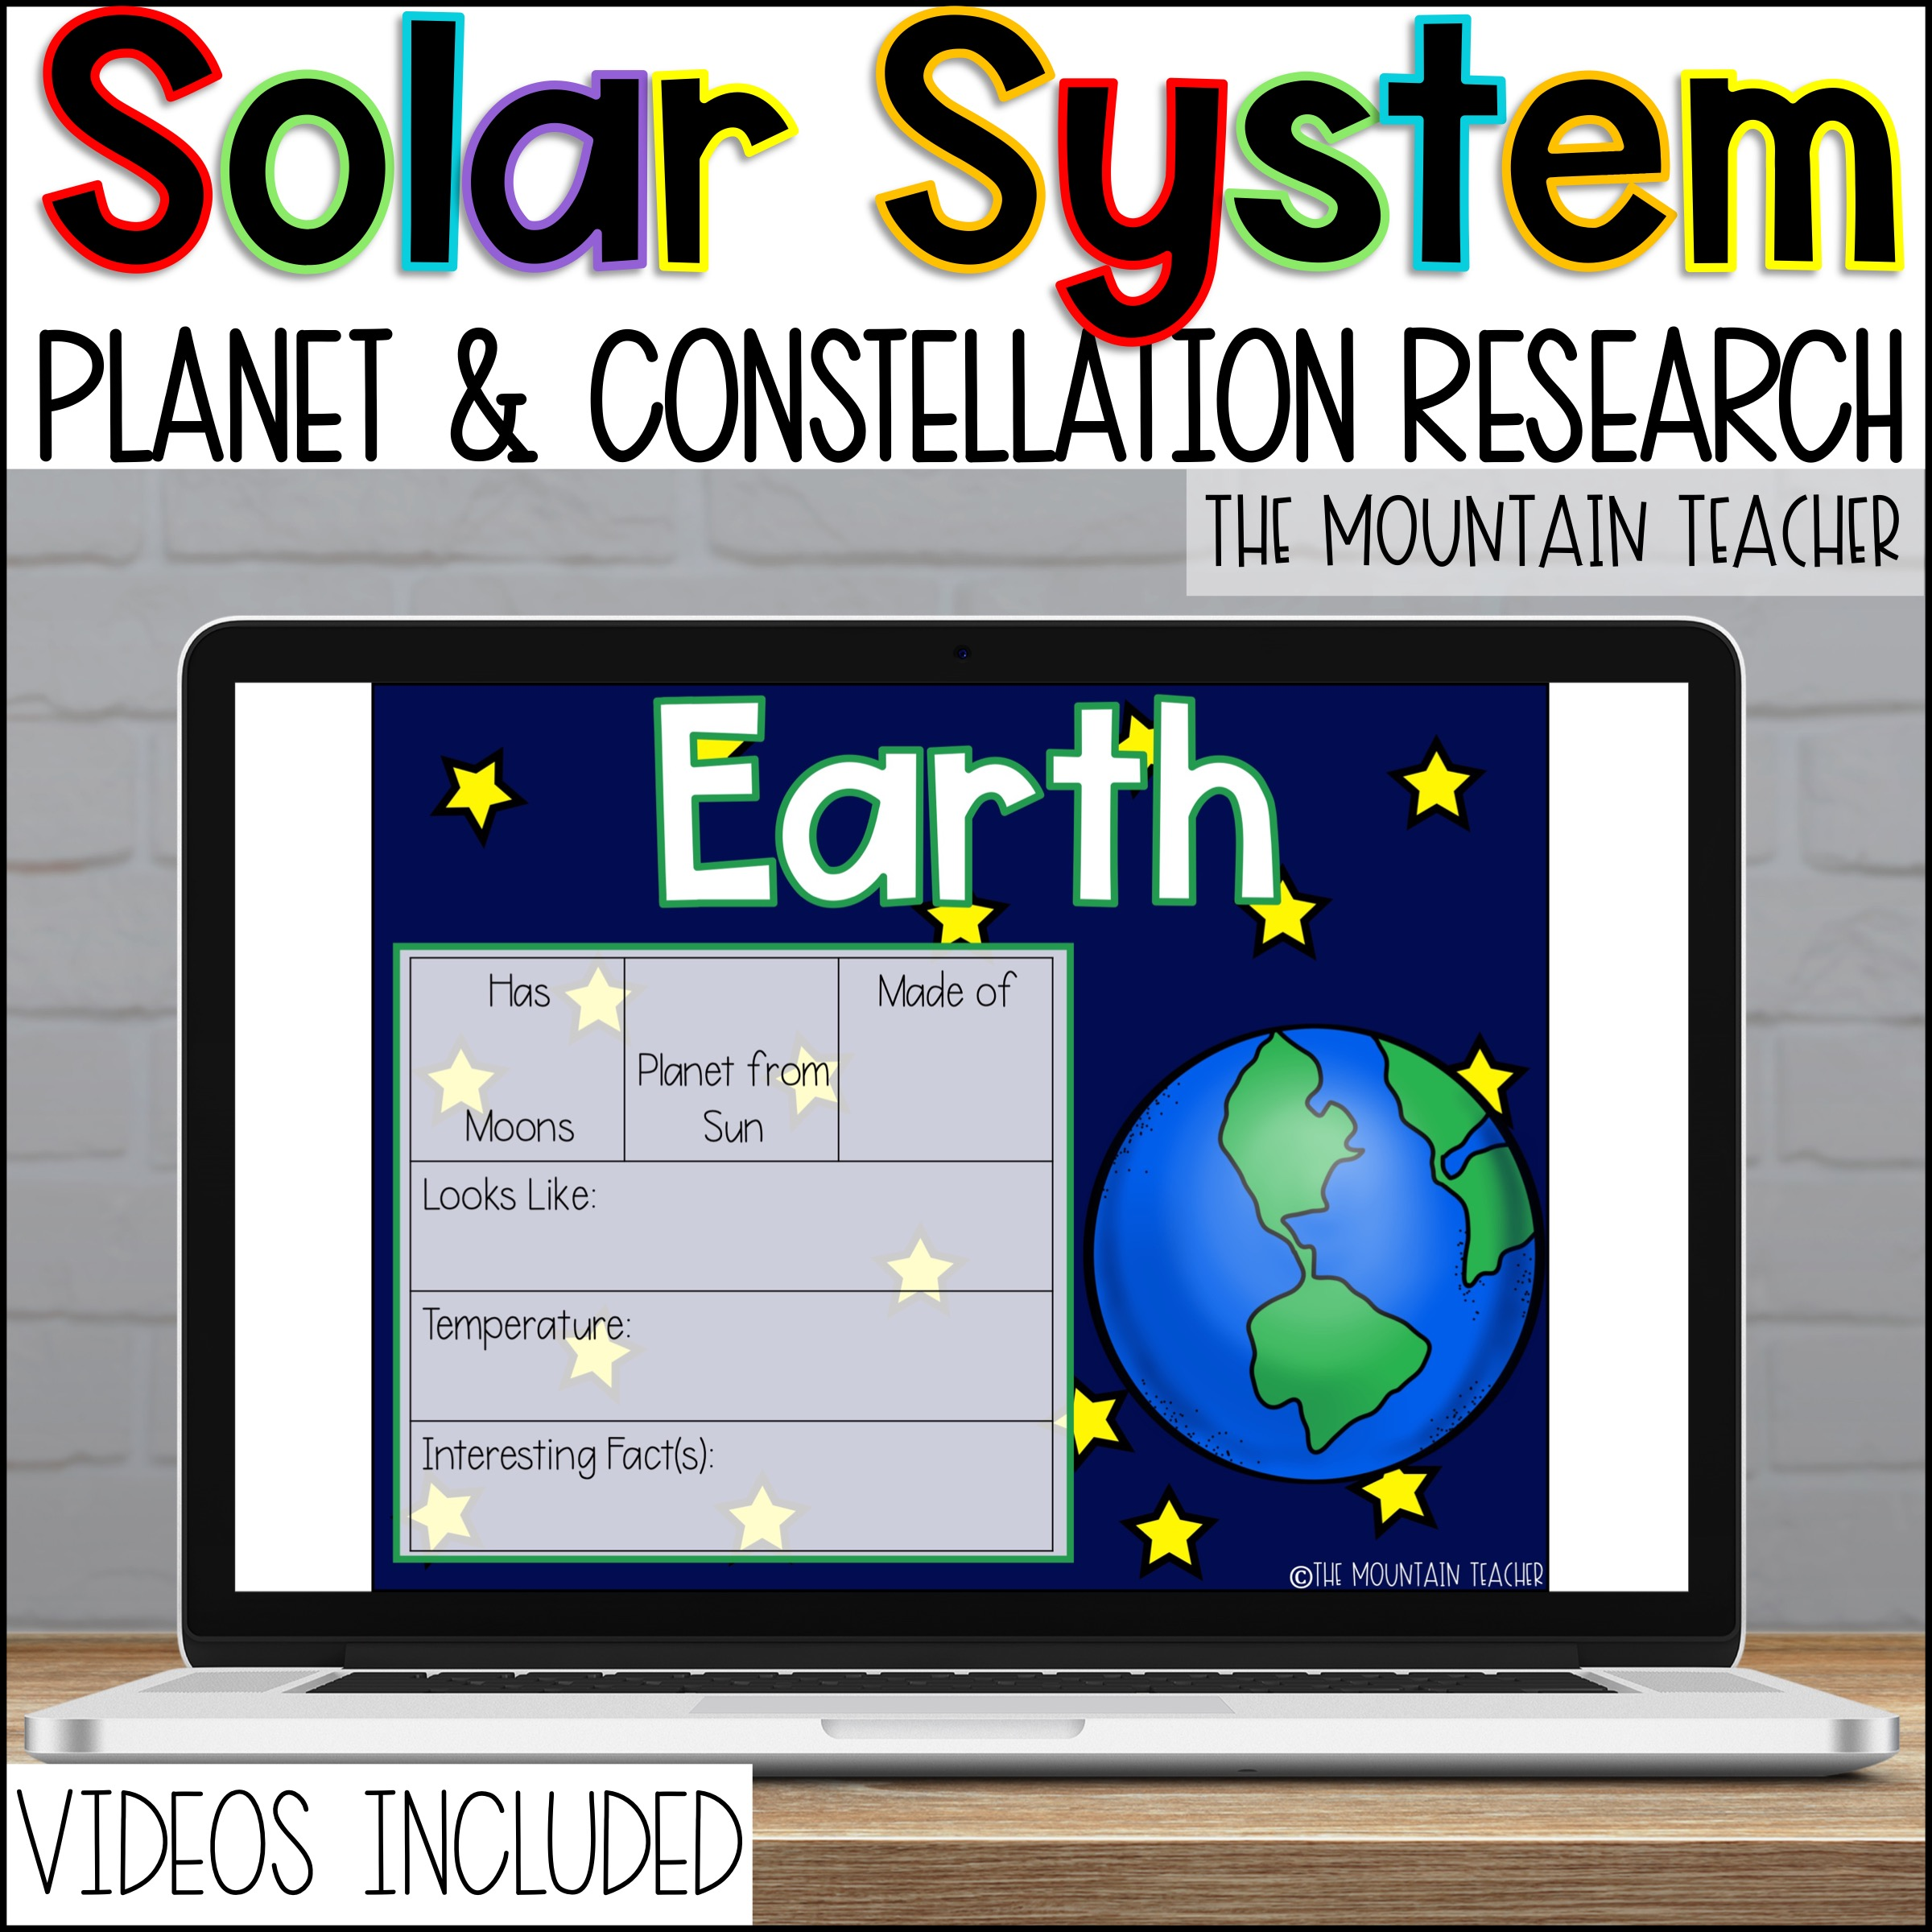 Digital Solar System Resource for 2nd or 3rd Grade Students Planets Constellations and More